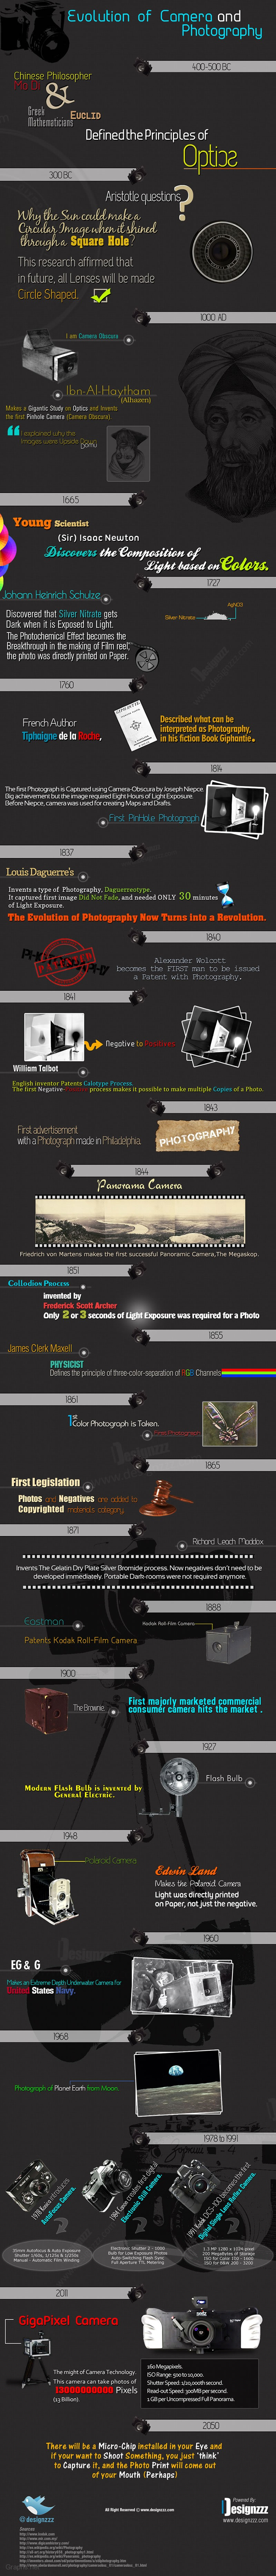 Evolution of photography and camera